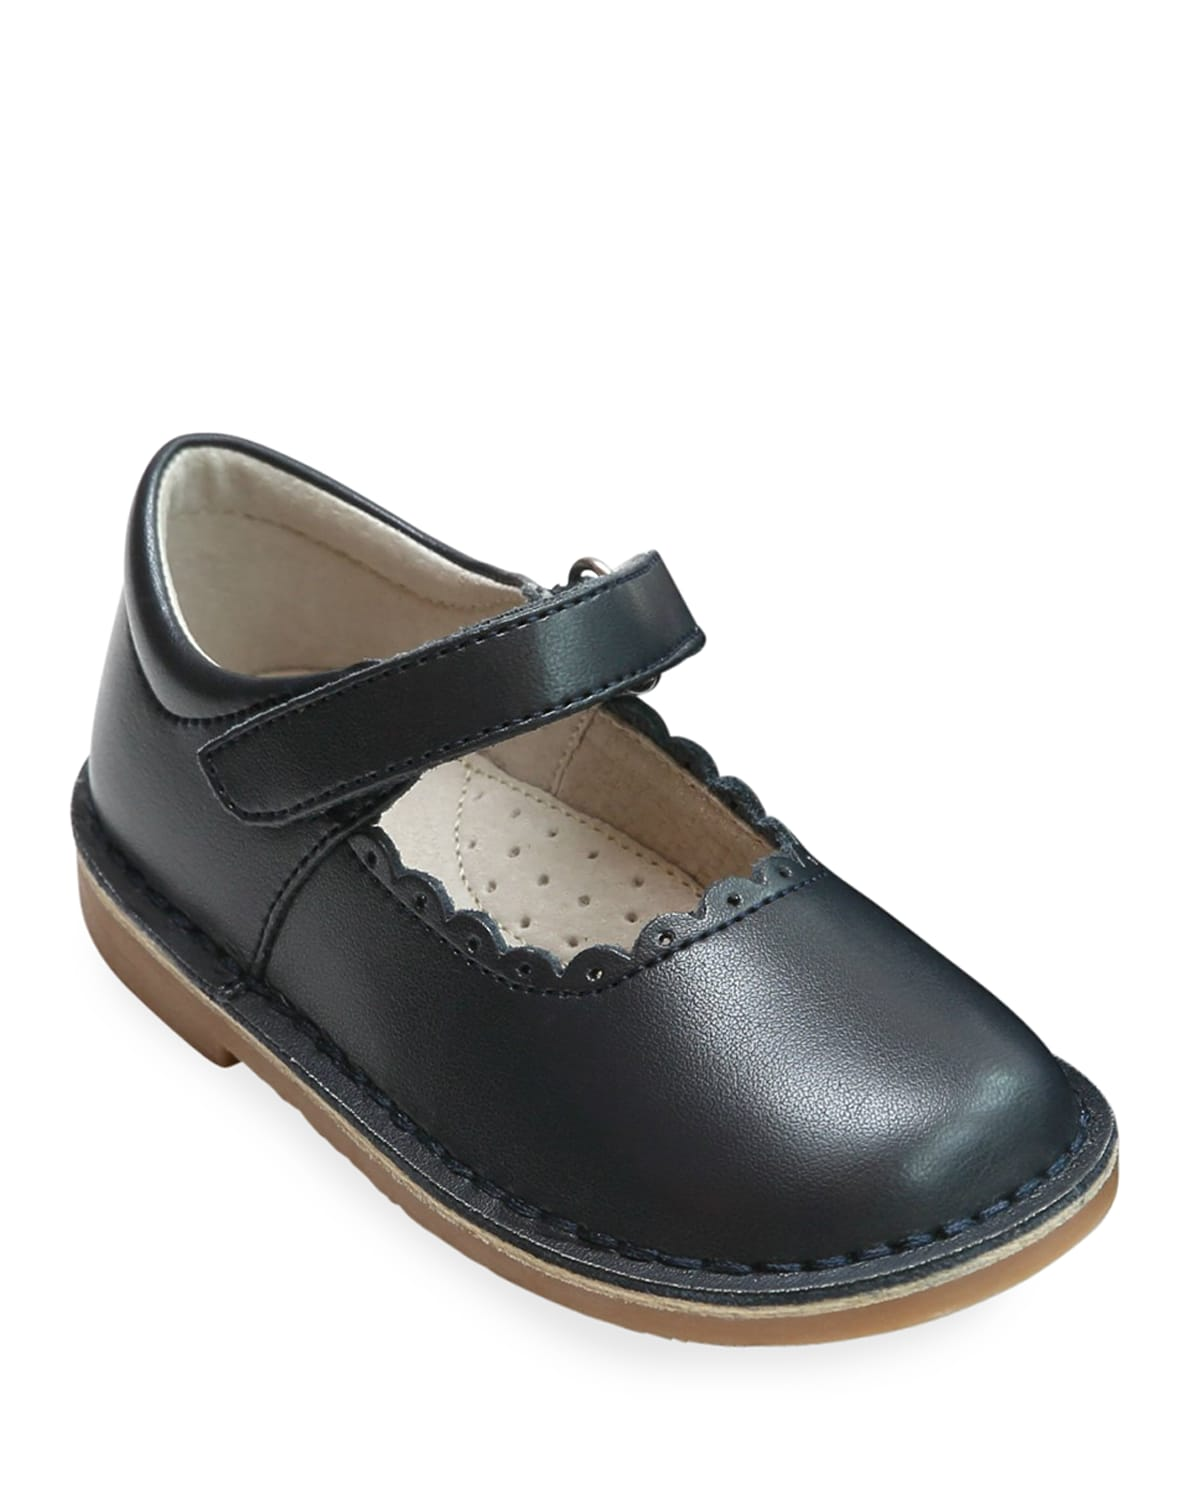 Caitlin Scalloped Leather Mary Jane